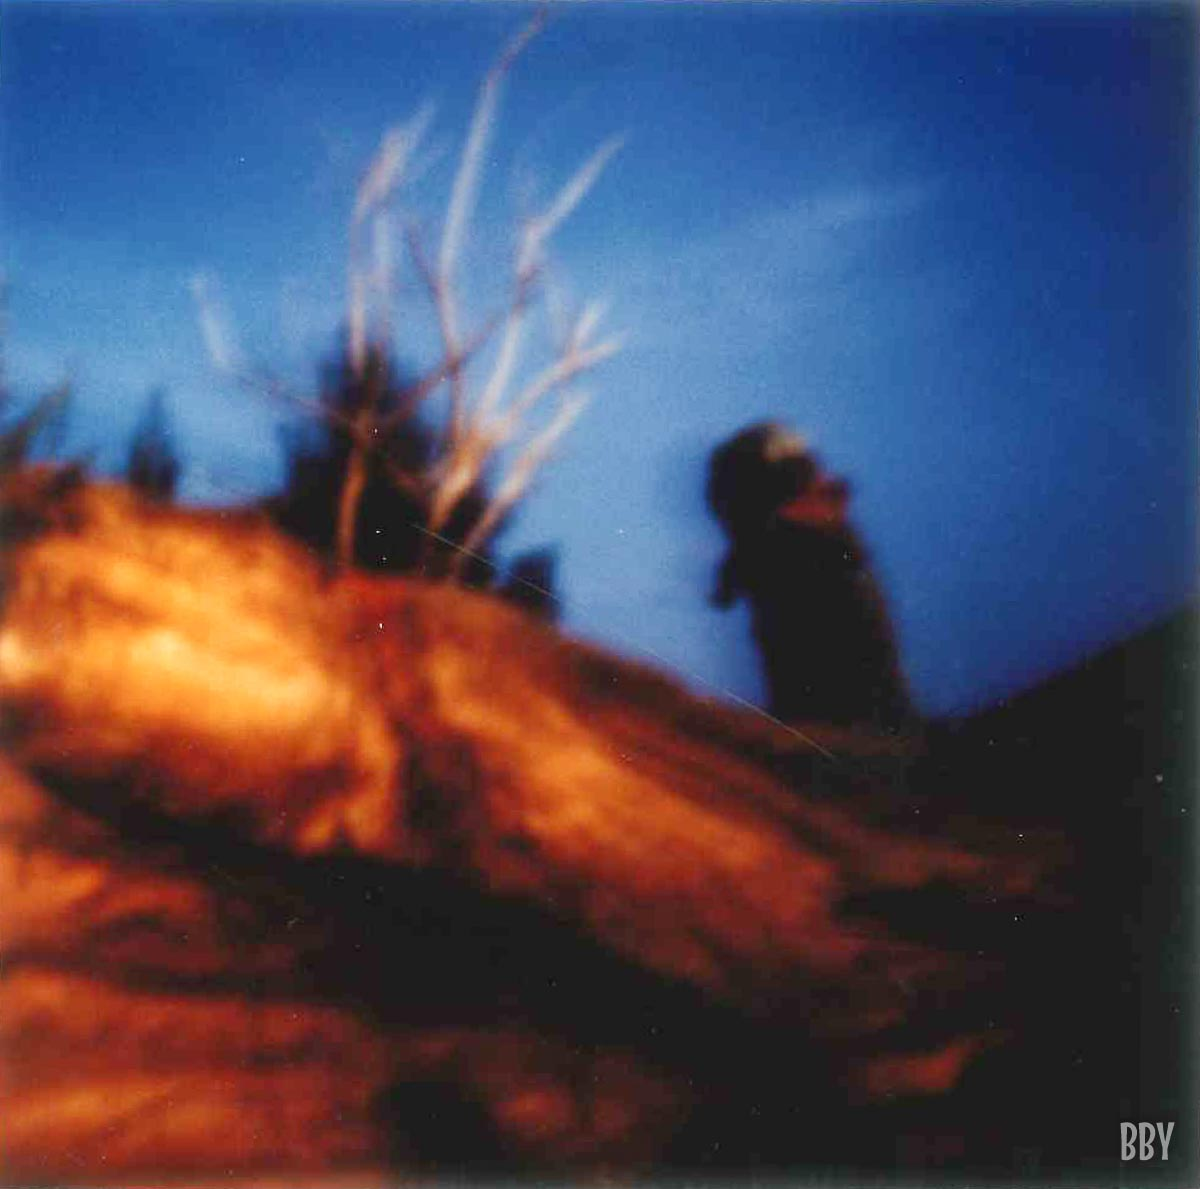 stenope, pinhole, slow photography, chambre noire